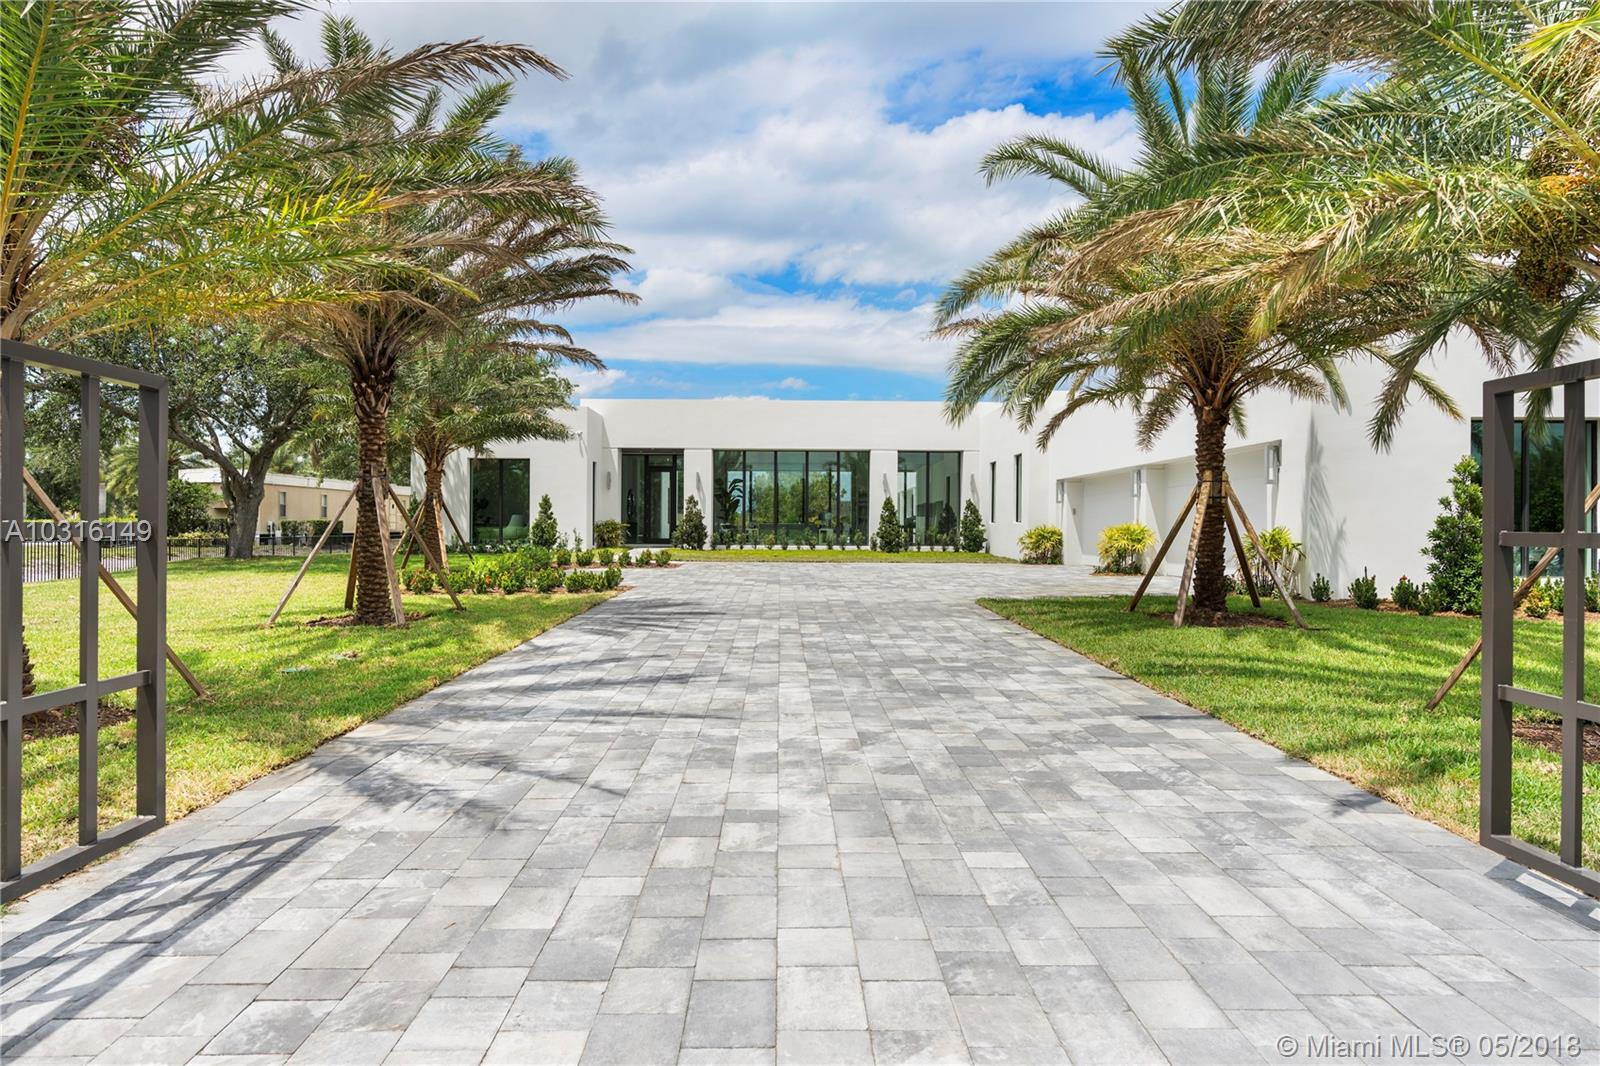 17125 Reserve Ct - Southwest Ranches, Florida